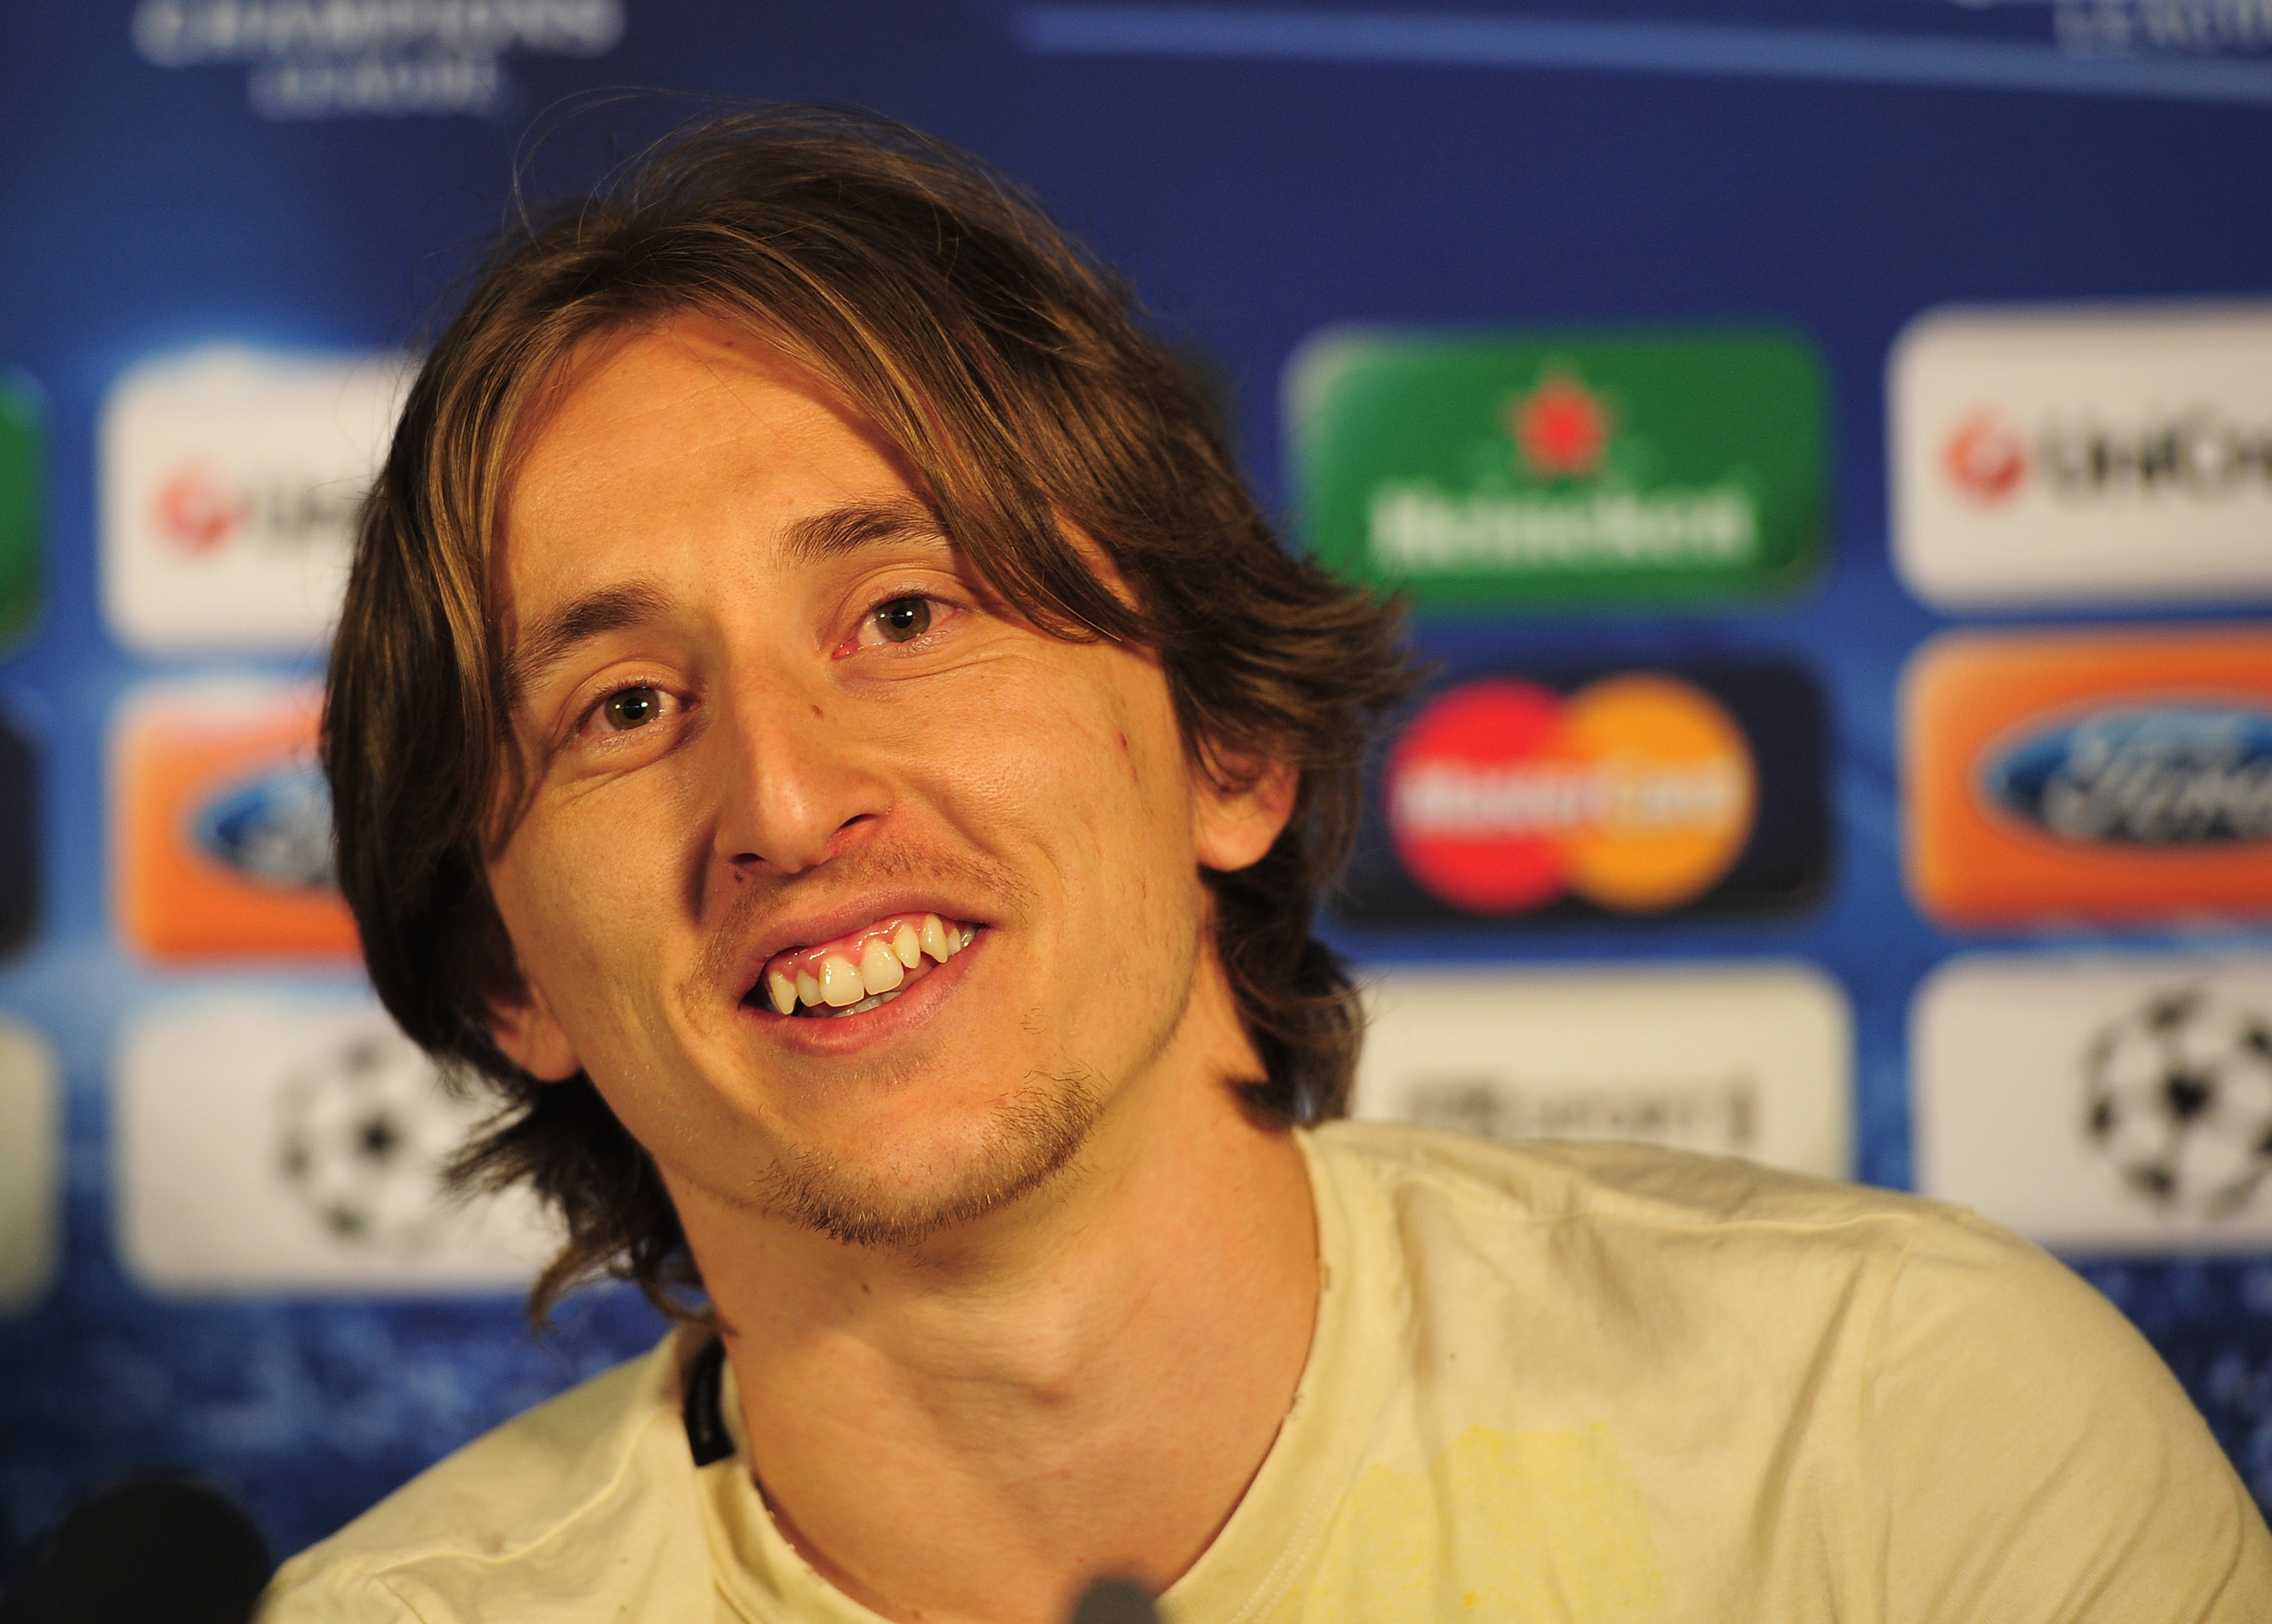 LONDON, ENGLAND - APRIL 12:  Luka Modric of Tottenham Hotspur talks to the media during a press conference on the eve of their UEFA Champions League quarter-final second leg match against Real Madrid at White Hart Lane on April 12, 2011 in London, England